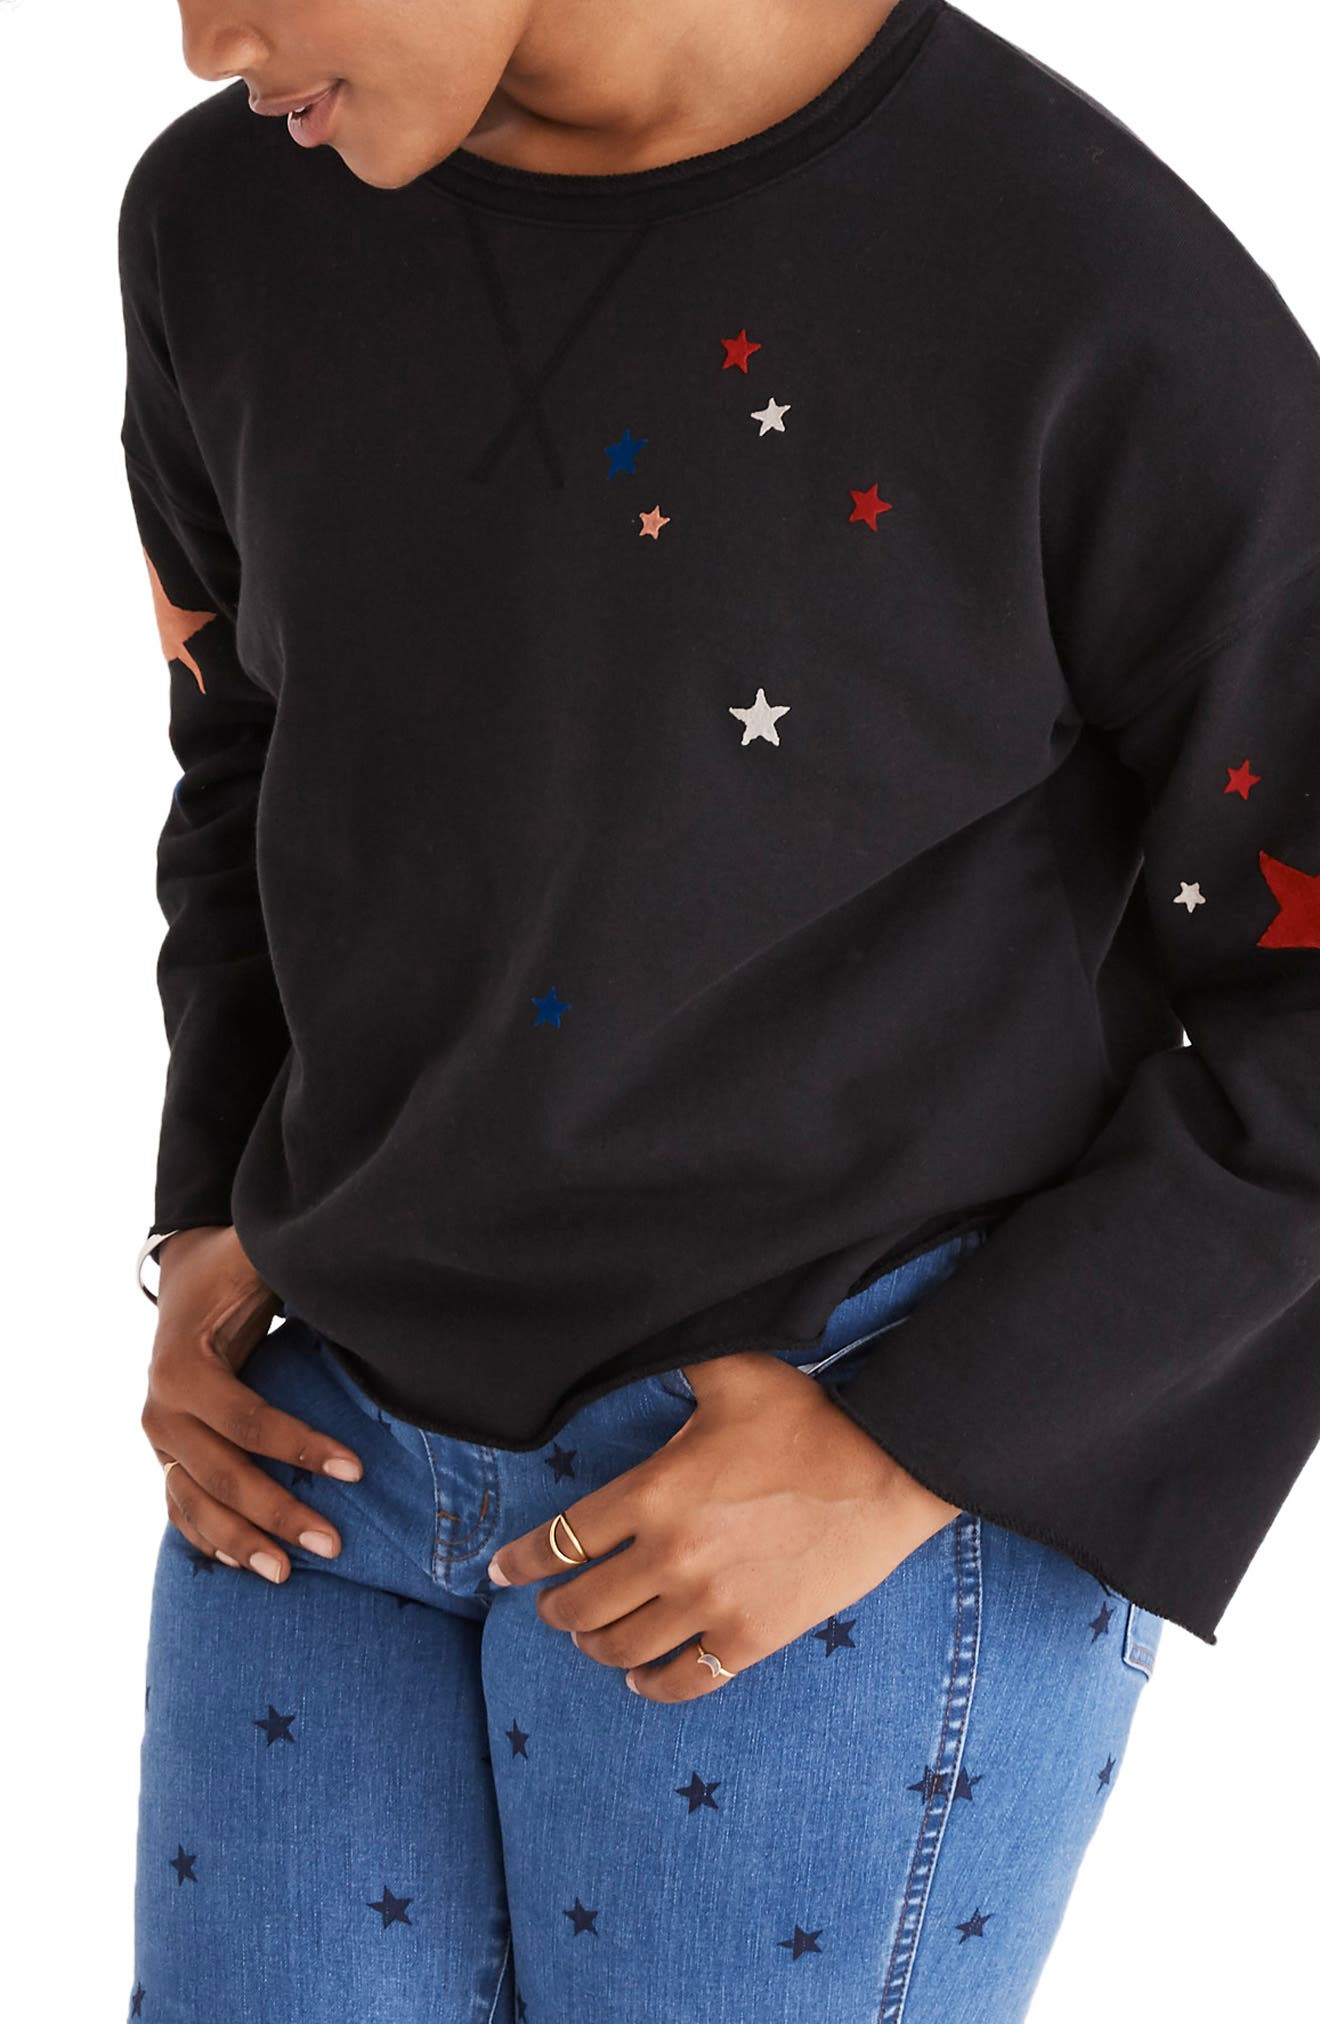 Starry Night Sweatshirt,                             Alternate thumbnail 2, color,                             CLASSIC BLACK